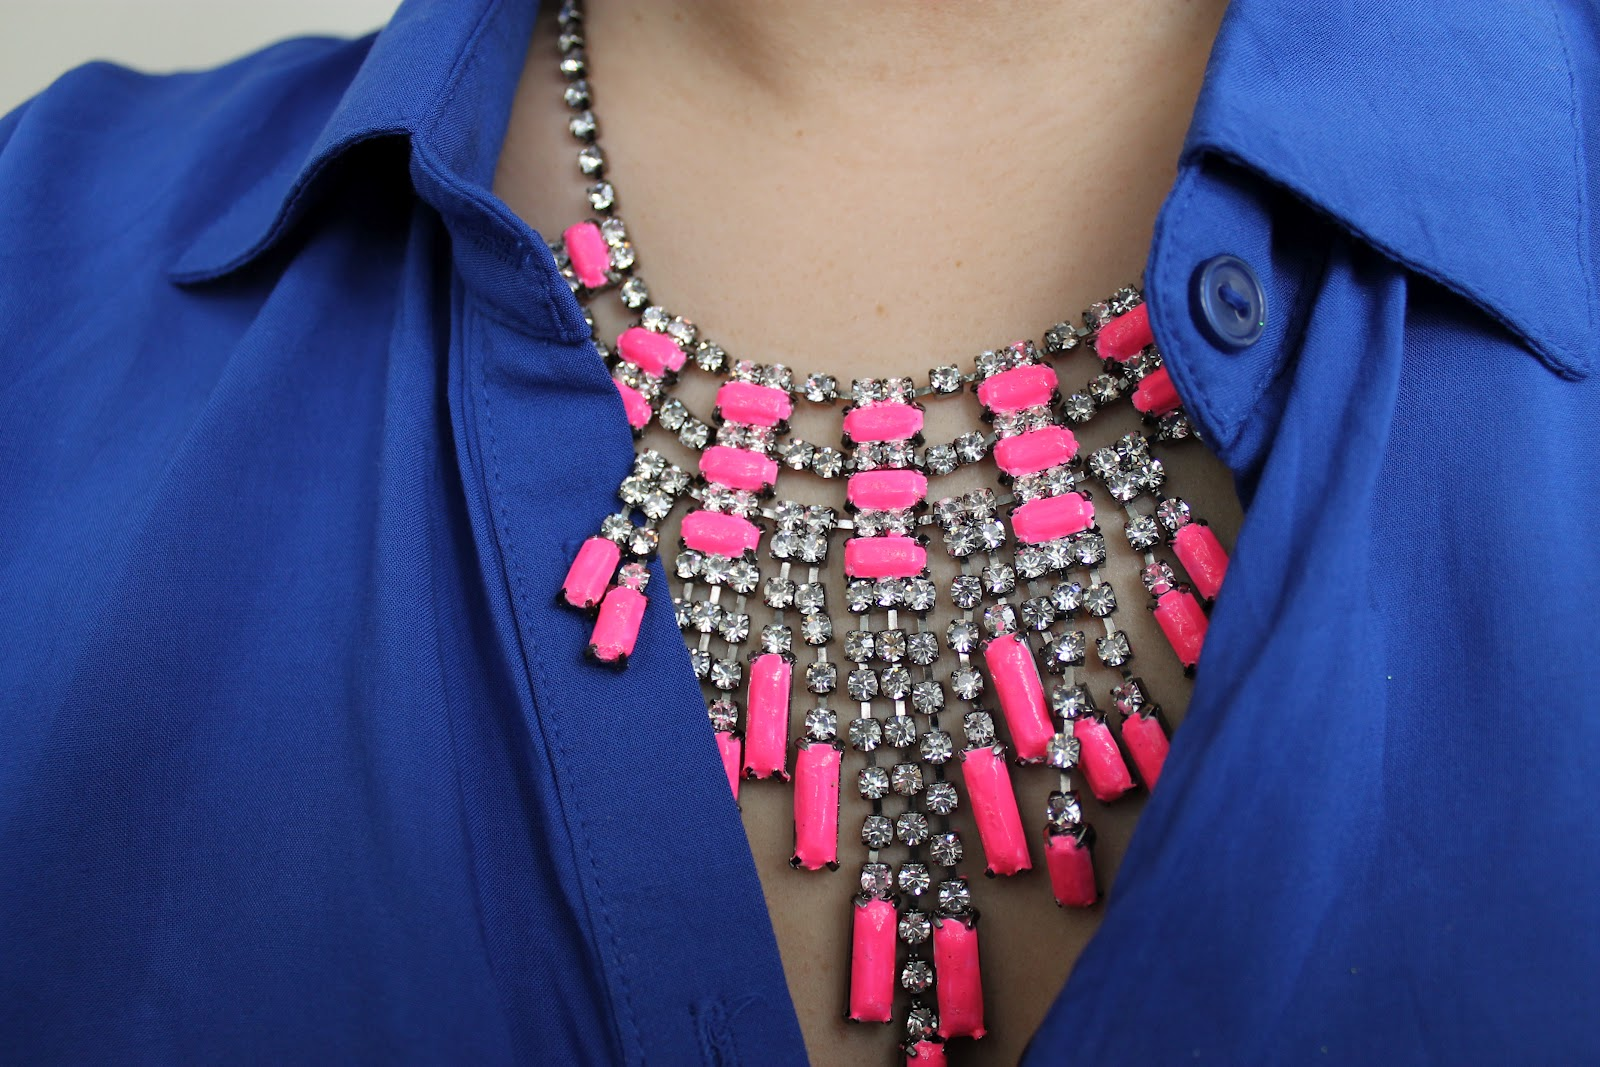 beauty the beard diy neon painted necklace. Black Bedroom Furniture Sets. Home Design Ideas